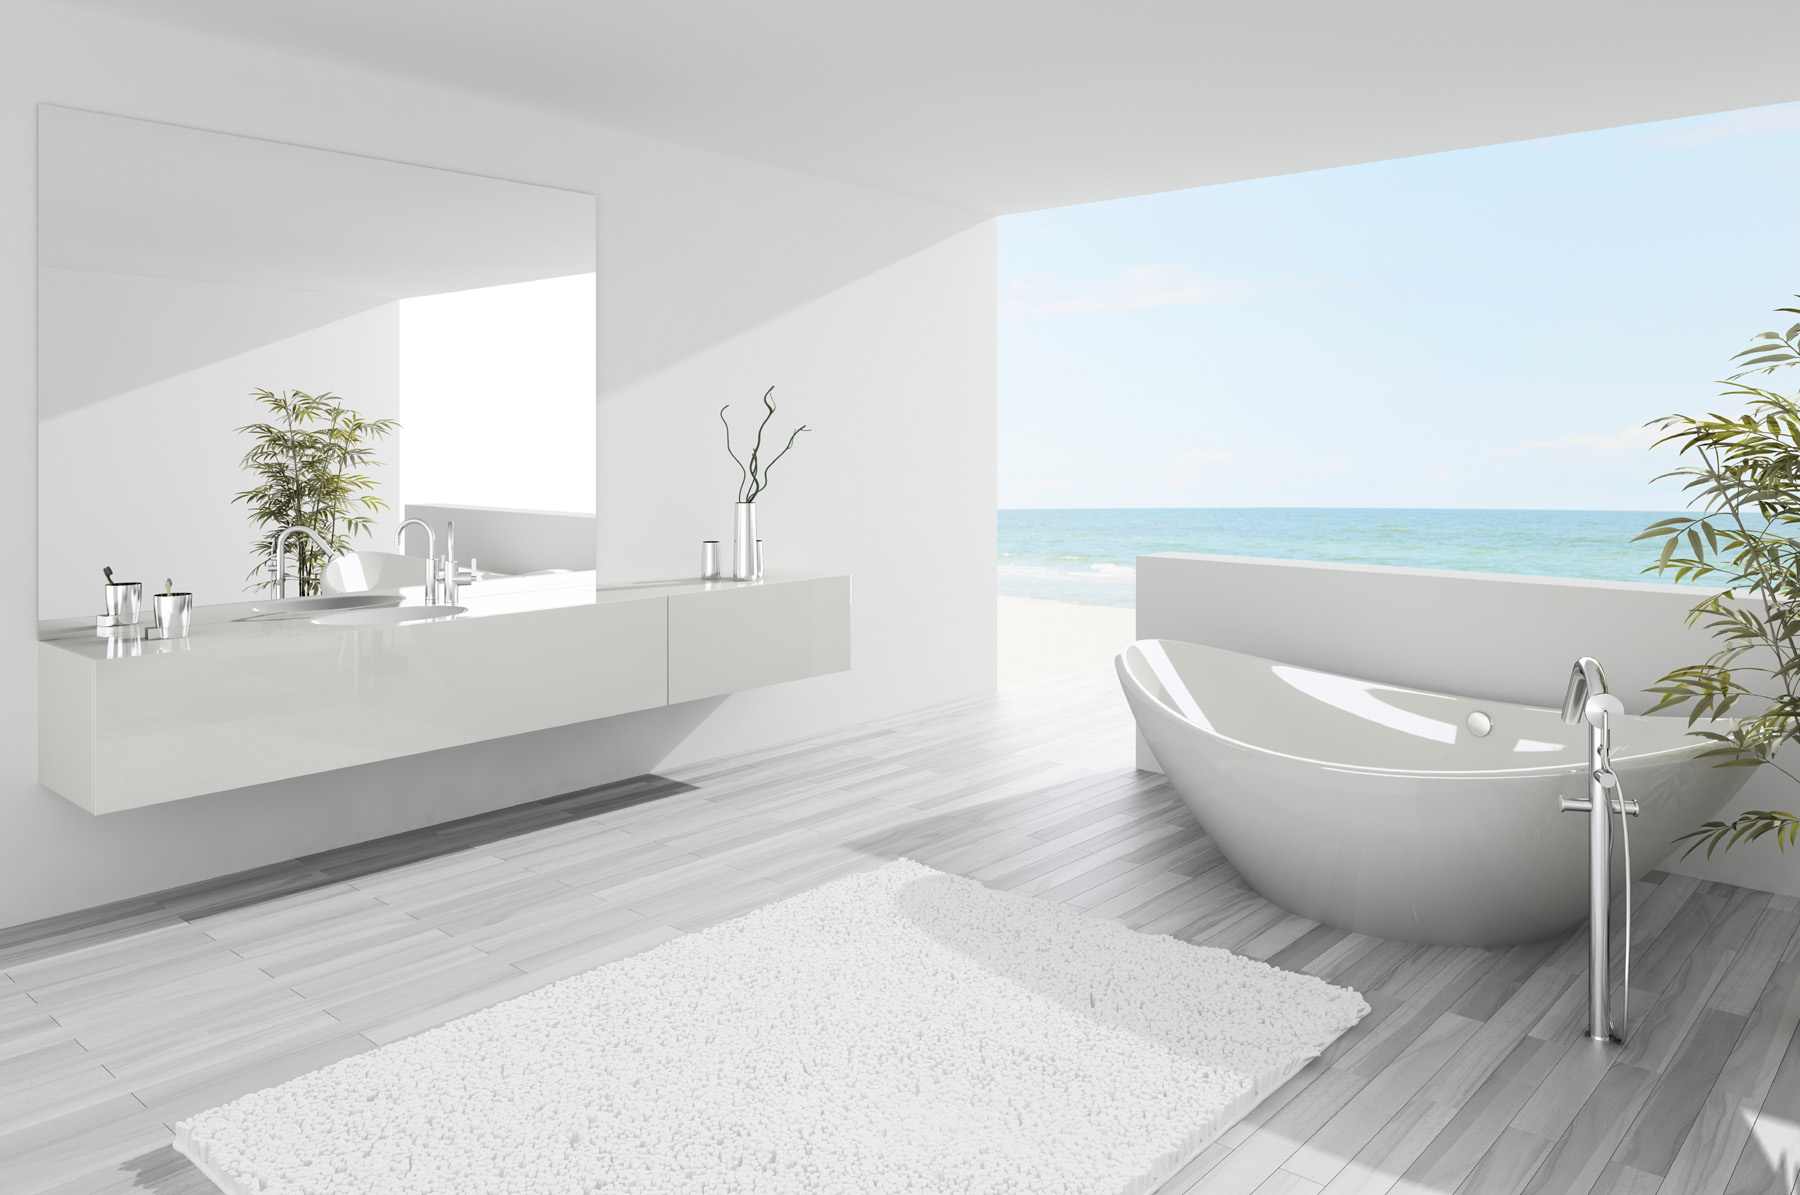 Villa ocean view bathtubs 51888